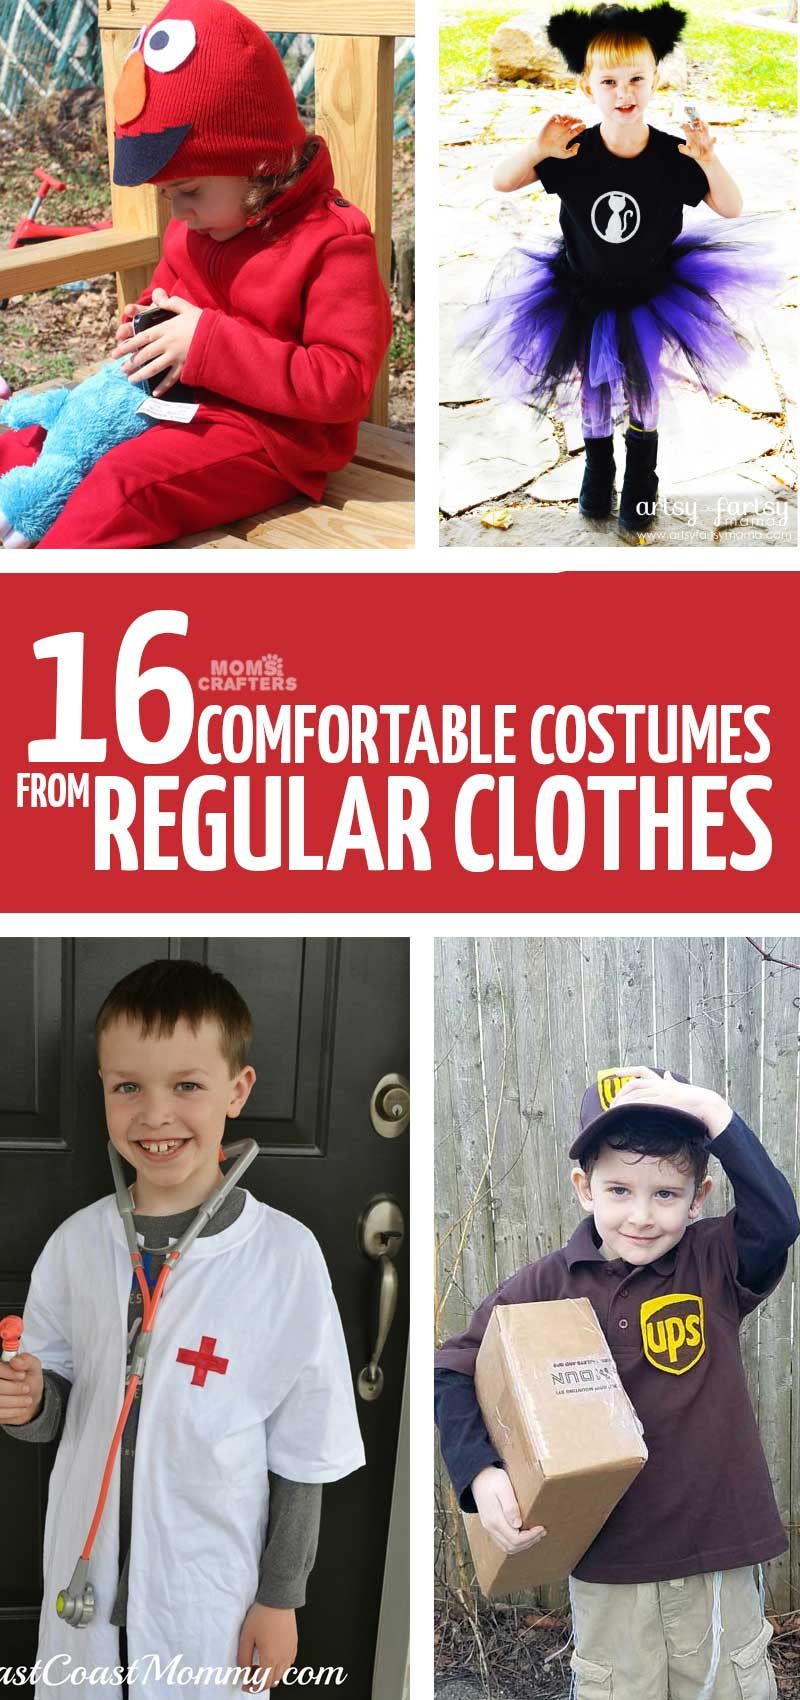 Use your kids' real clothing to make these fun Halloween costumes! These easy costumes with normal clothes include ideas for boys and girls too.